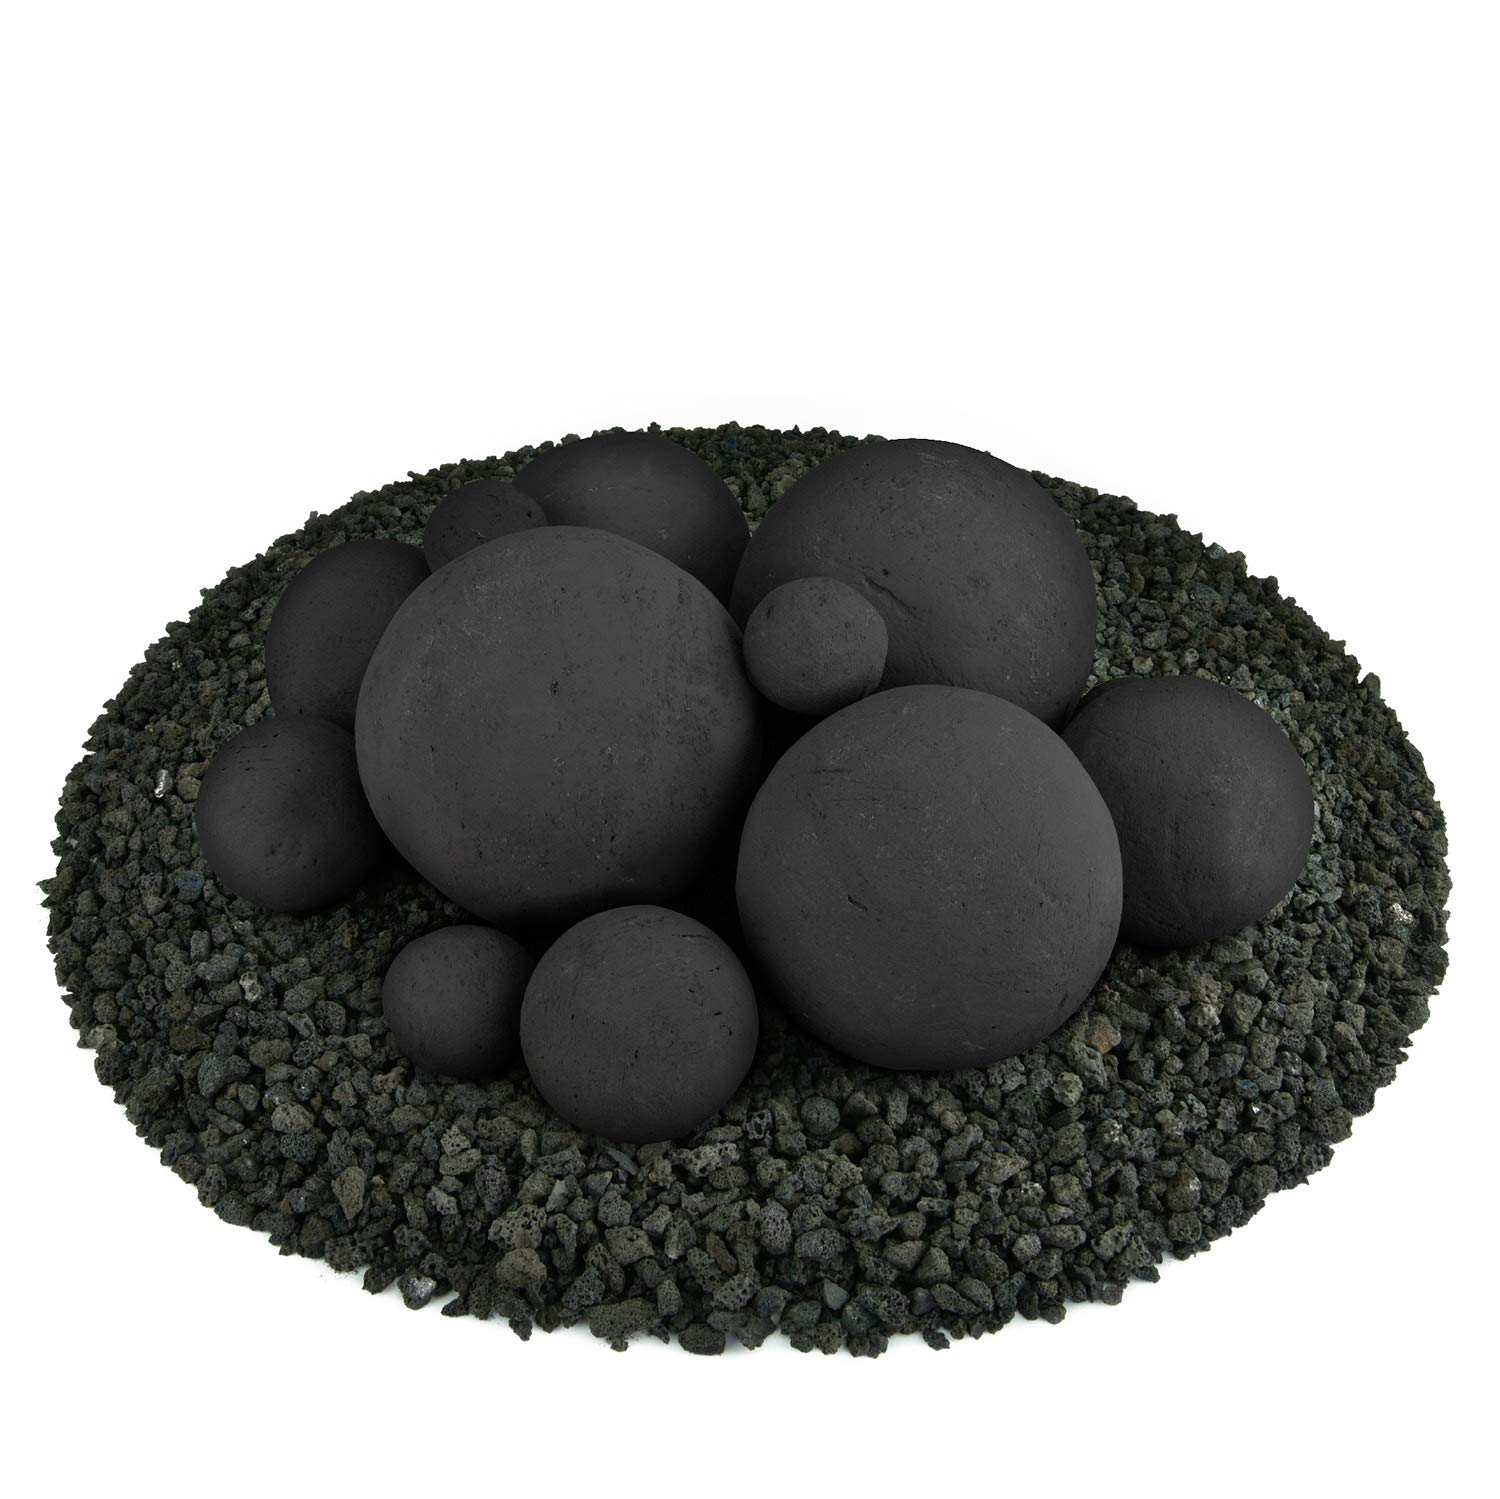 Ceramic Fire Balls | Mixed Set of 13 | Modern Accessory for Indoor and Outdoor Fire Pits or Fireplaces – Brushed Concrete Look | Midnight Black